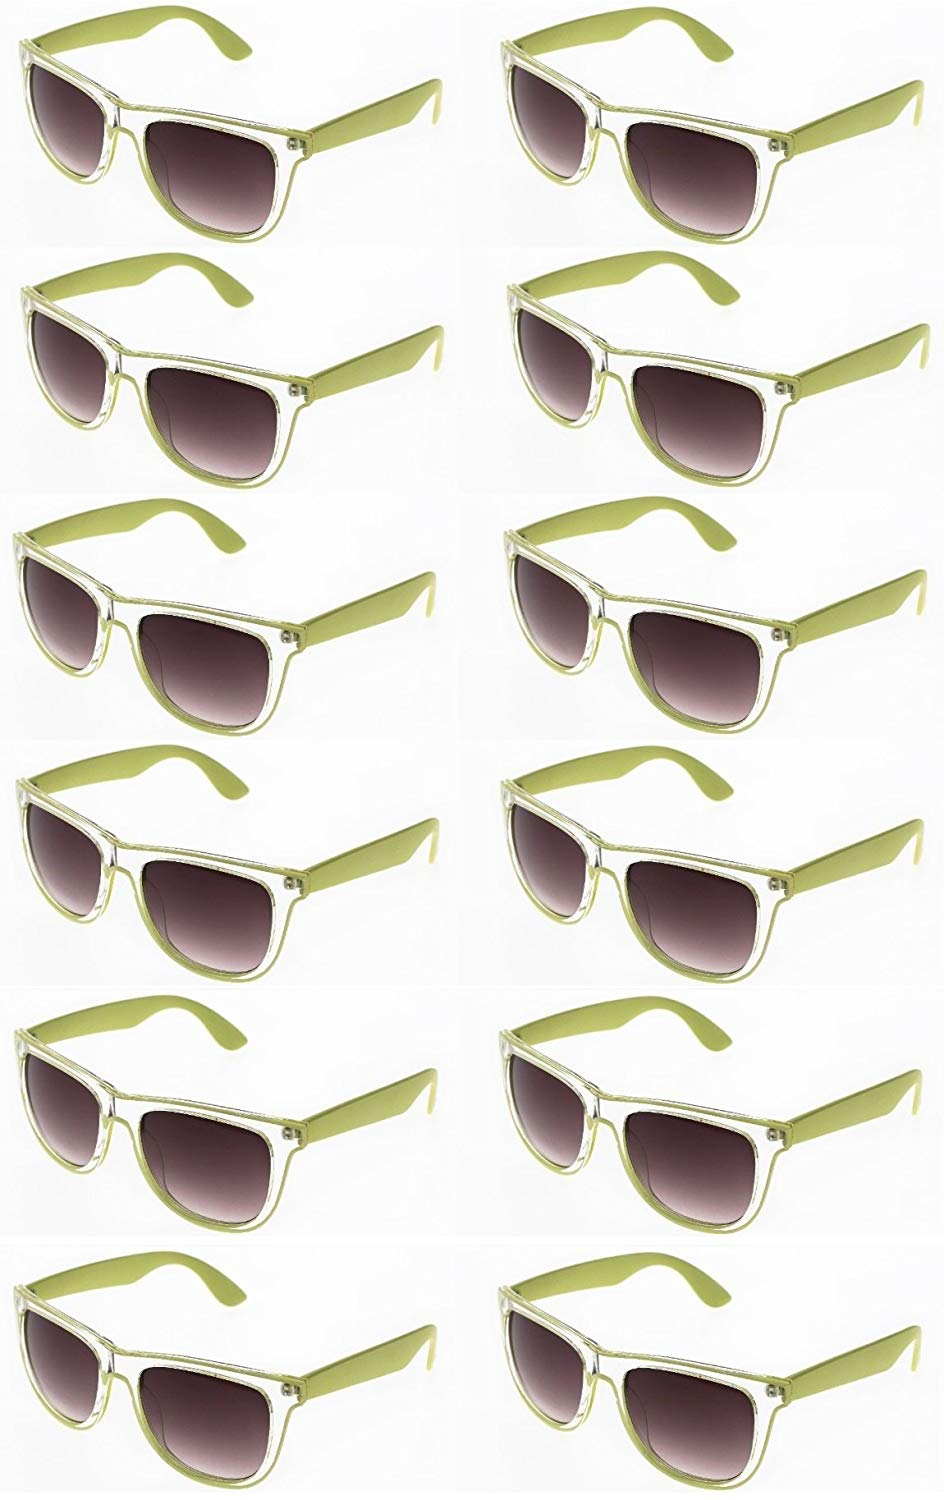 6f682b8298 Get Quotations · CLASSIC 80 s WAYF SUNGLASSES - Retro Translucent Frame Sunglasses  Bulk Pack. Classic Style Sunglasses for